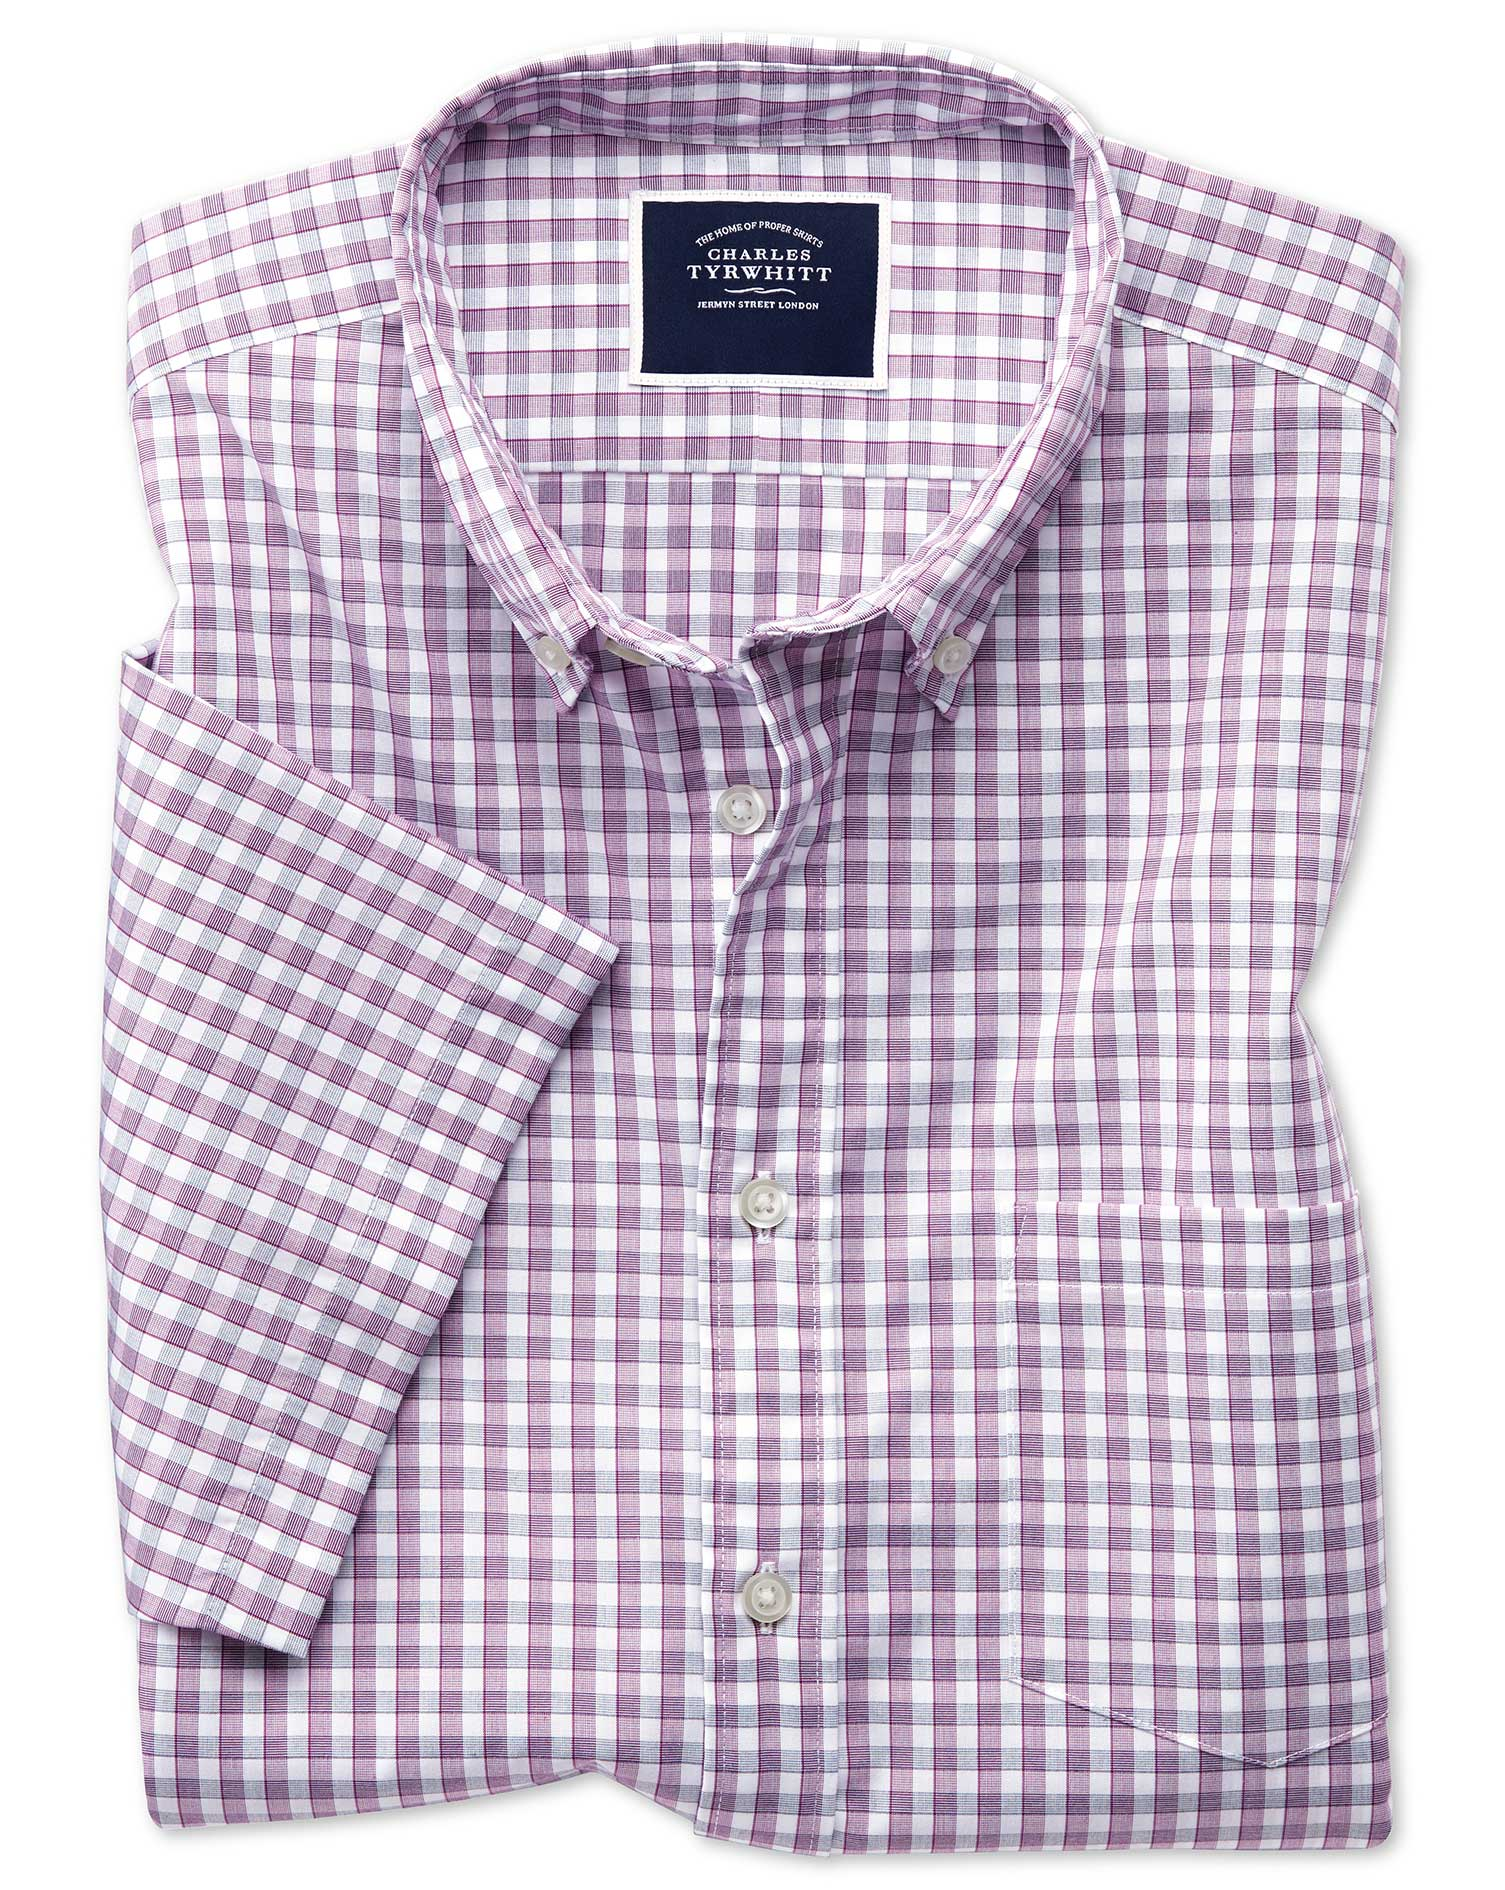 Classic Fit Berry Short Sleeve Gingham Soft Washed Non-Iron Tyrwhitt Cool Cotton Shirt Single Cuff S